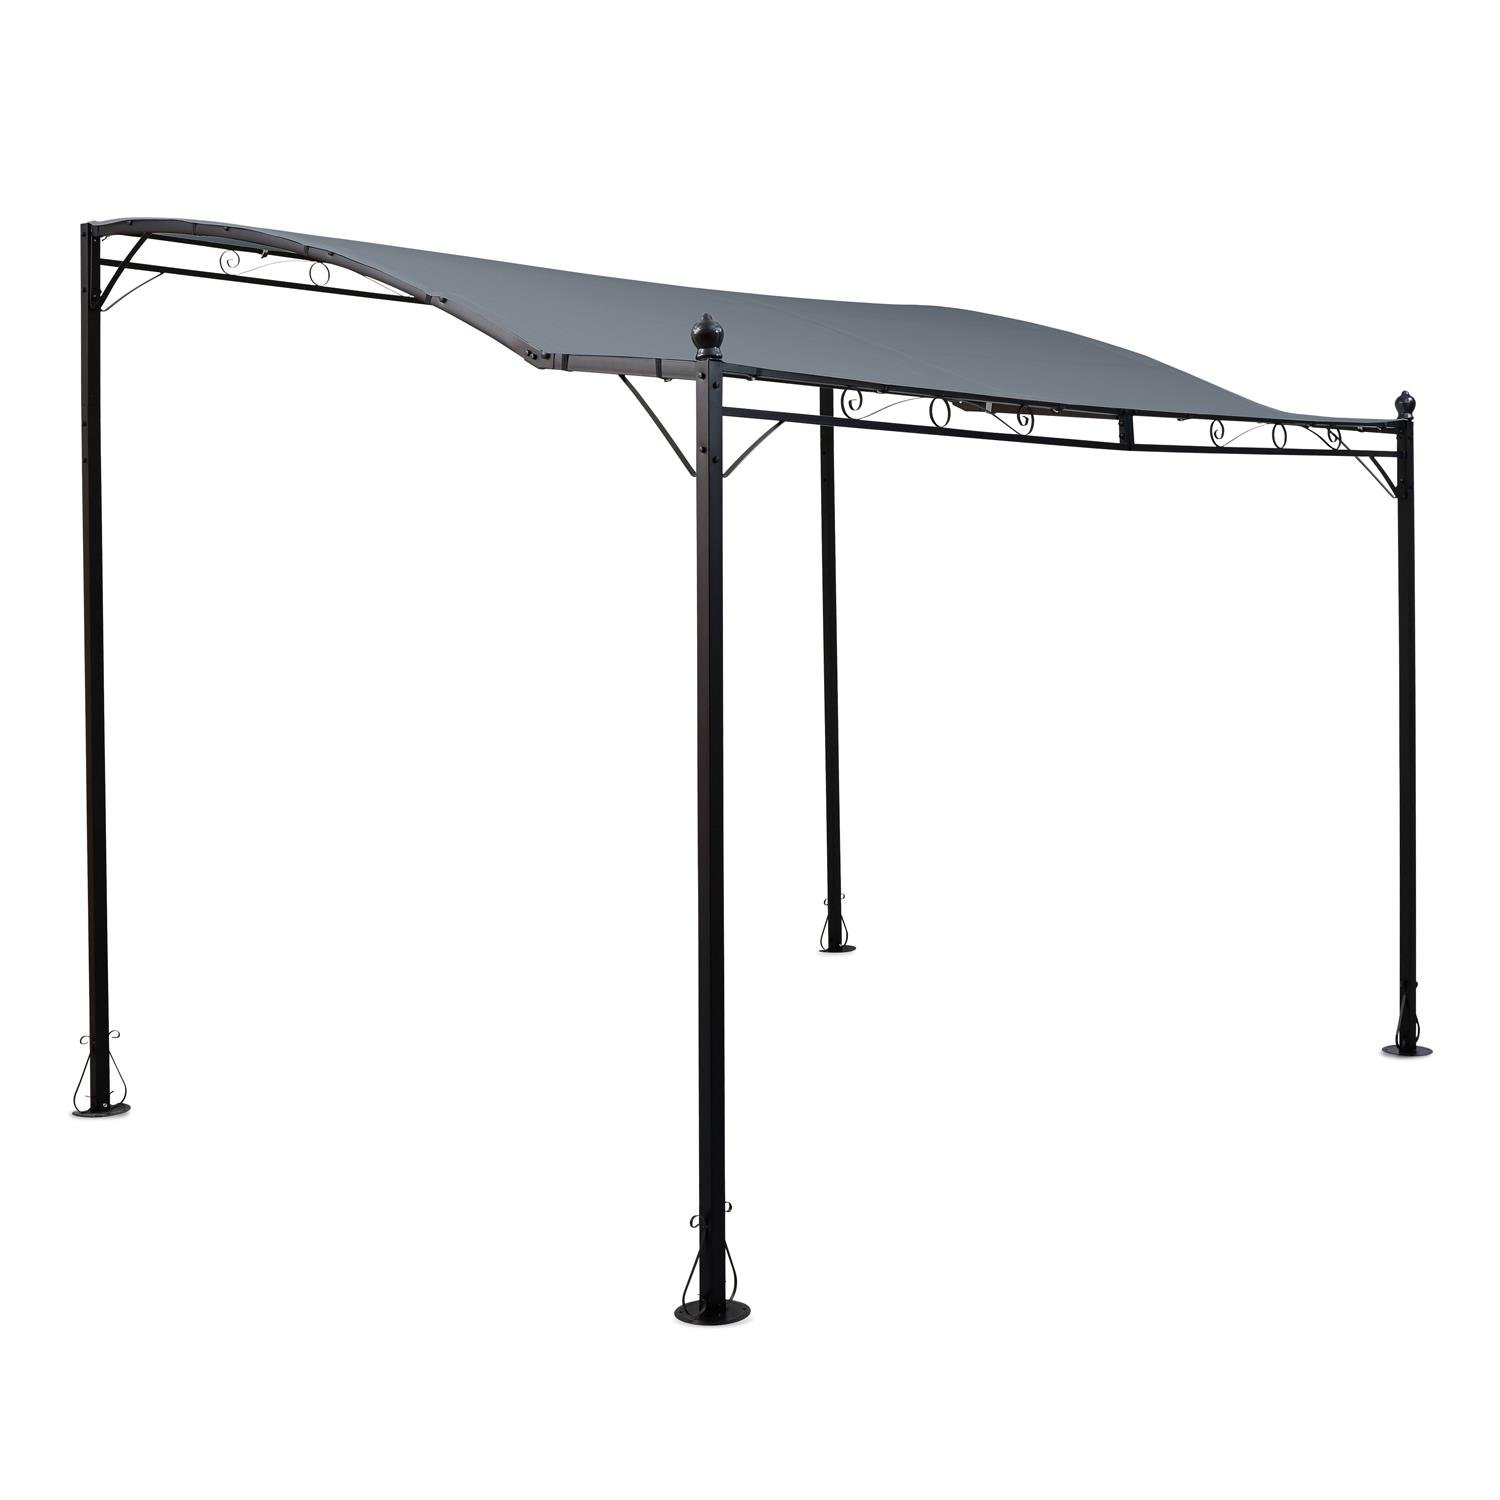 Blumfeldt Allure Pergola Canopy Pavillon (300x250cm, Water-Resistant Polyester Cover with PU Coating, Ideal as Terrace Roof or Canoply) Dark Grey